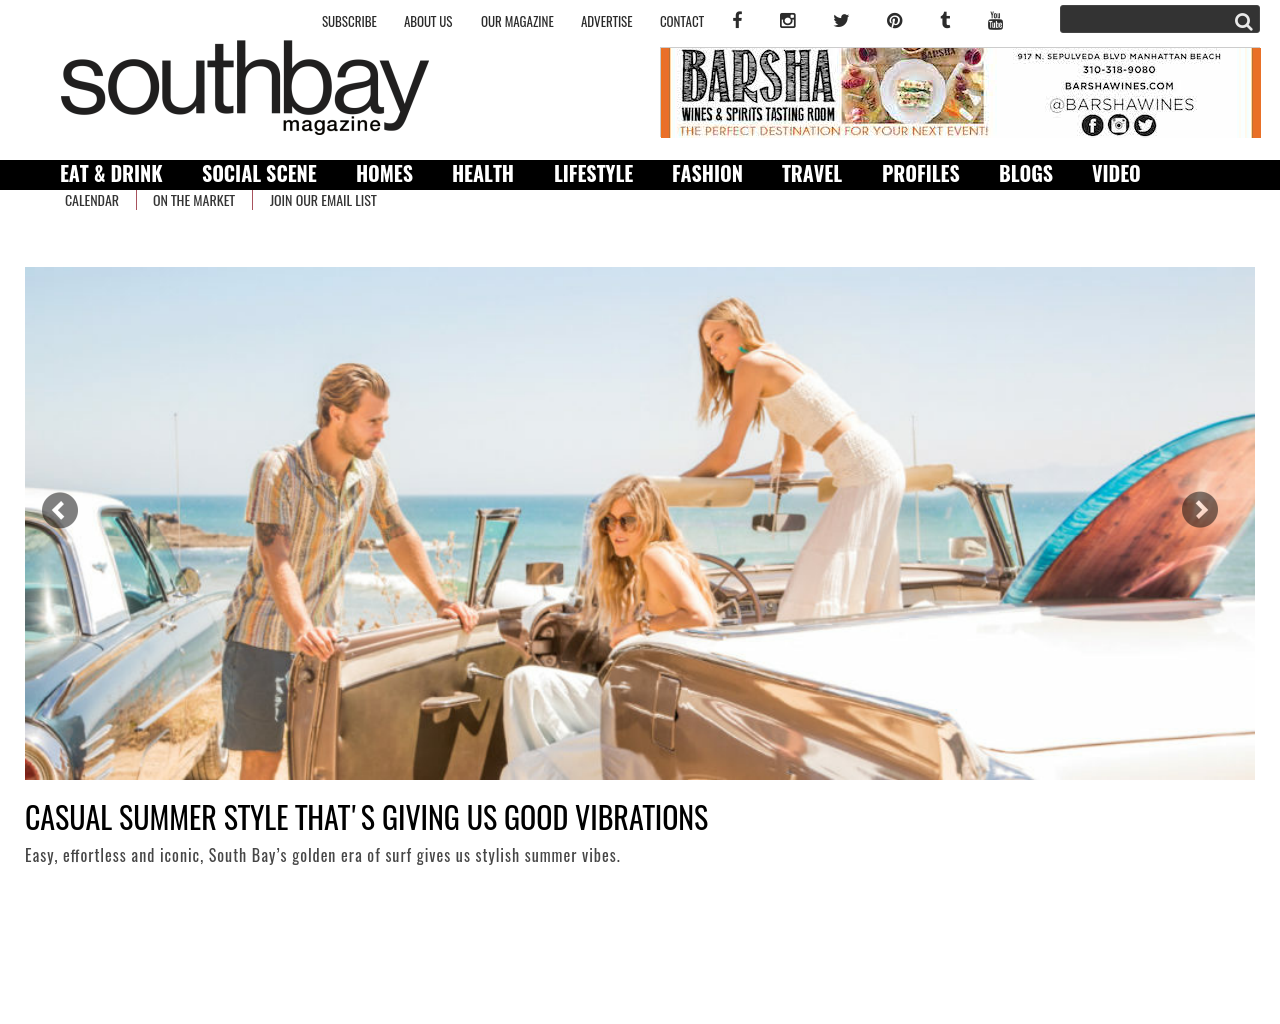 Southbay-Magazine-Advertising-Reviews-Pricing